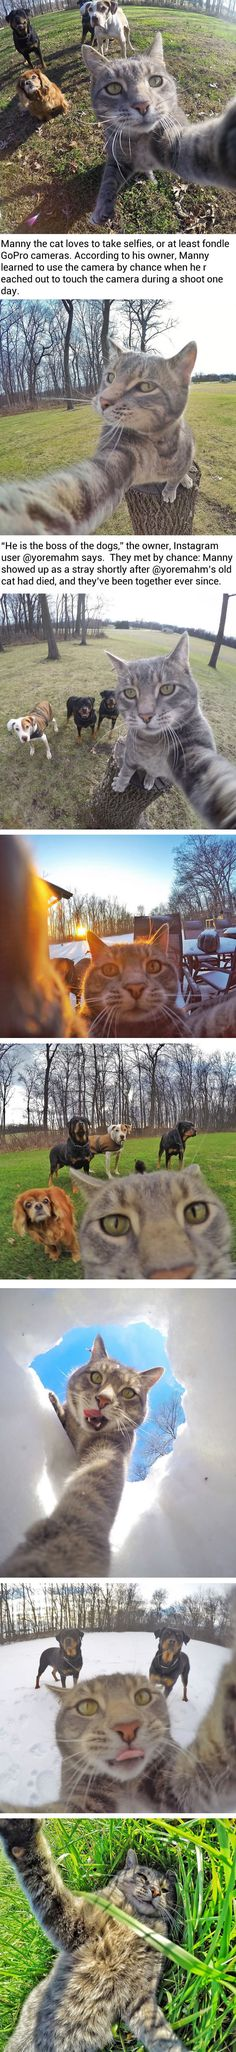 Manny The Selfie Taking Cat Takes Better Selfies Than You (via @yoremahm) - 9GAG